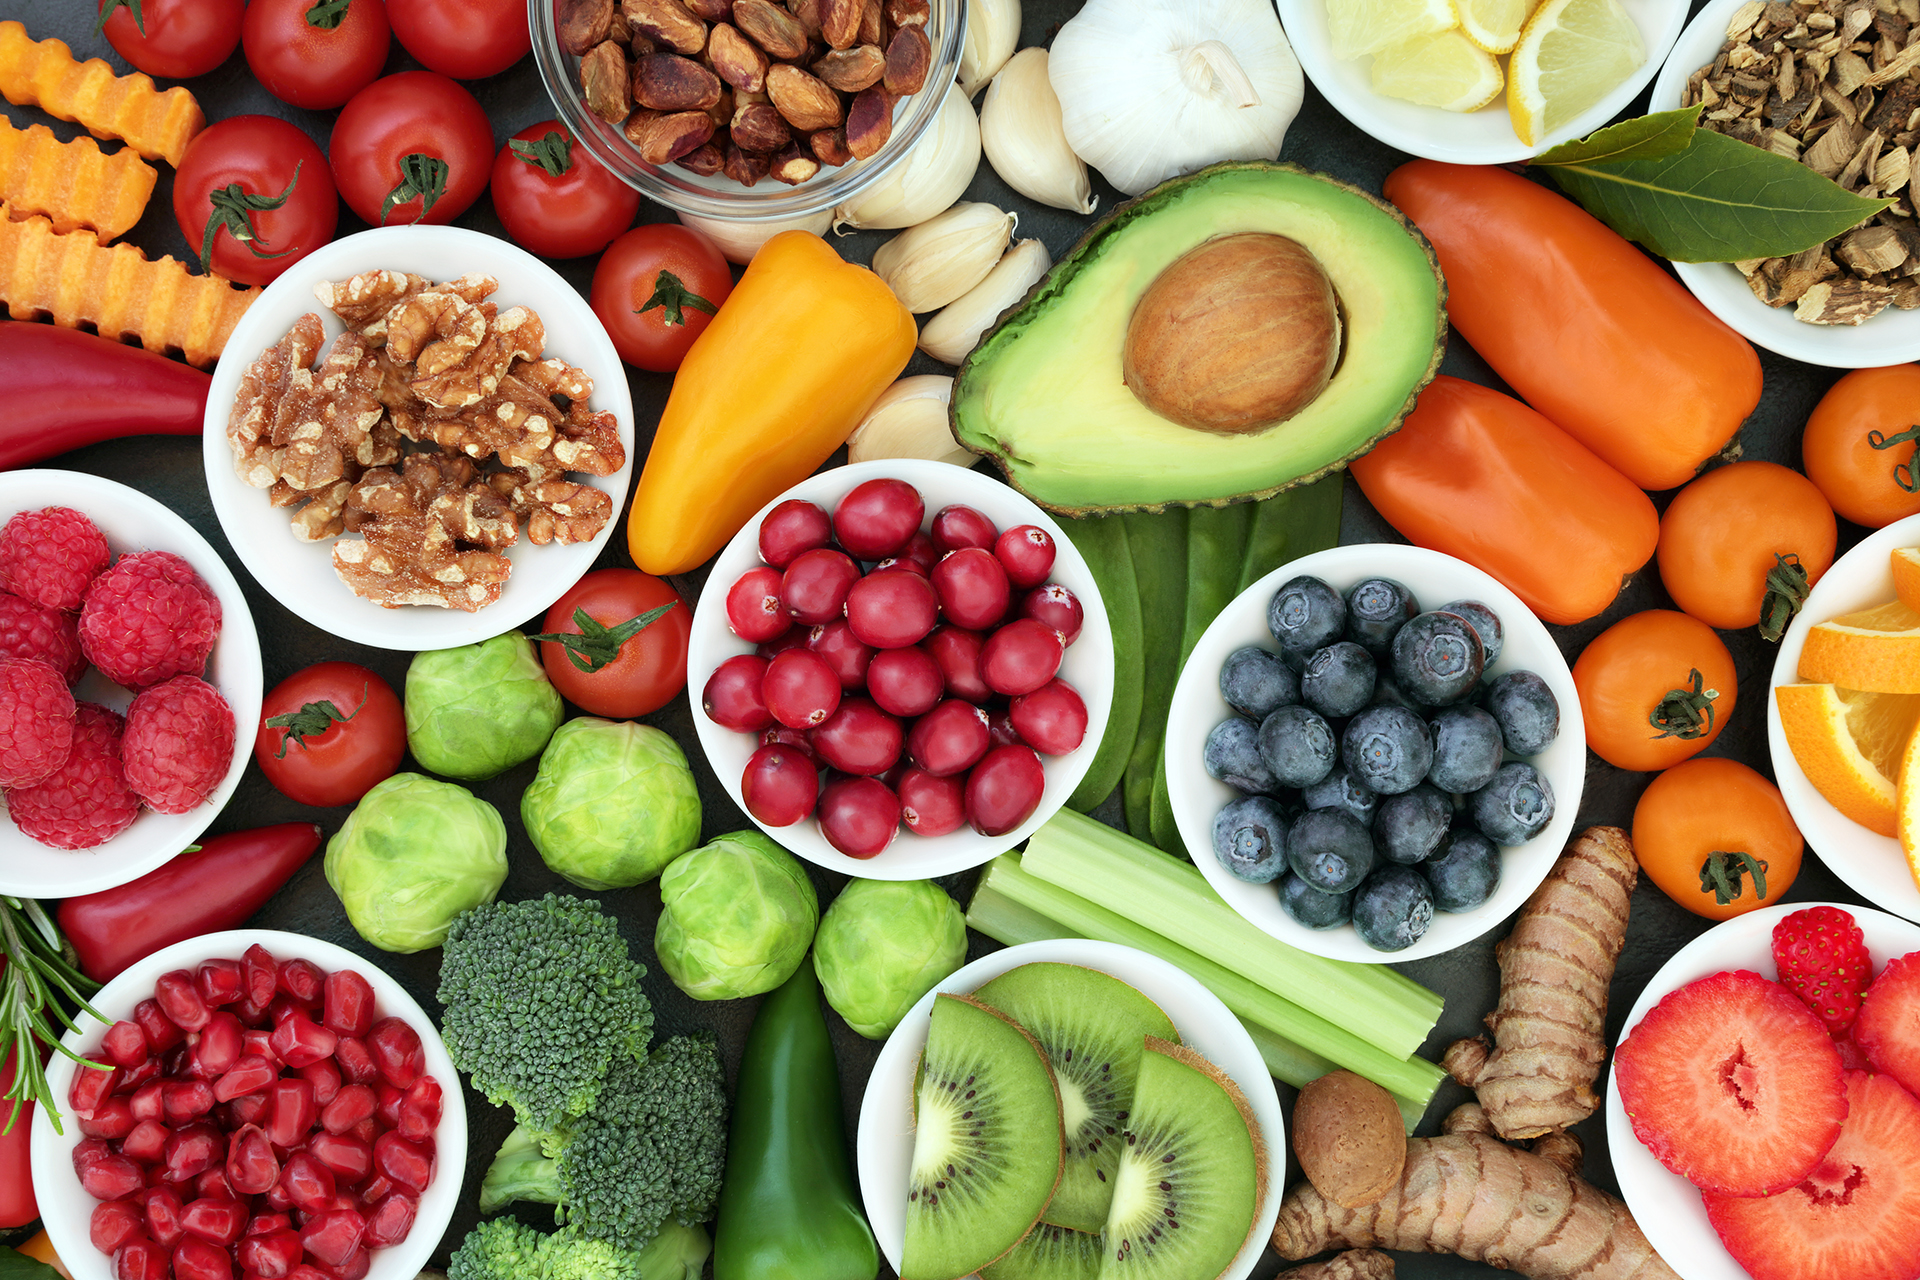 Healthy superfood concept with vegetables, fruit, herbs, spice and nuts. Food very high in antioxidants, anthocyanins, omega 3, minerals and vitamins.